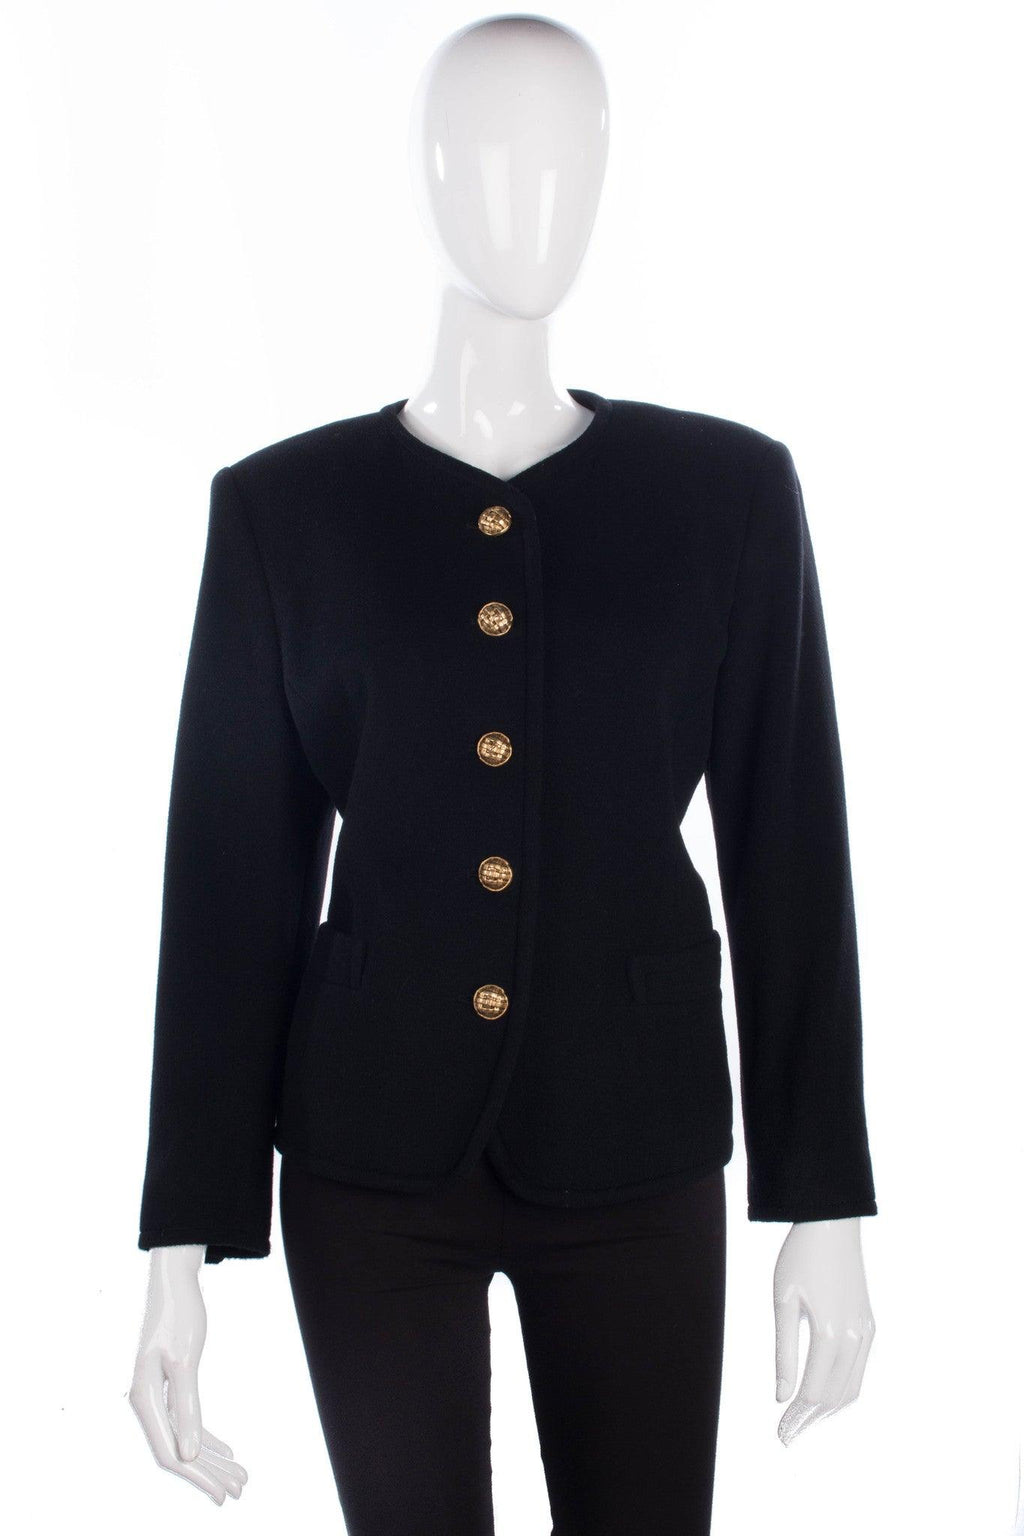 Lampert black wool and cashmere jacket with gold buttons size 12